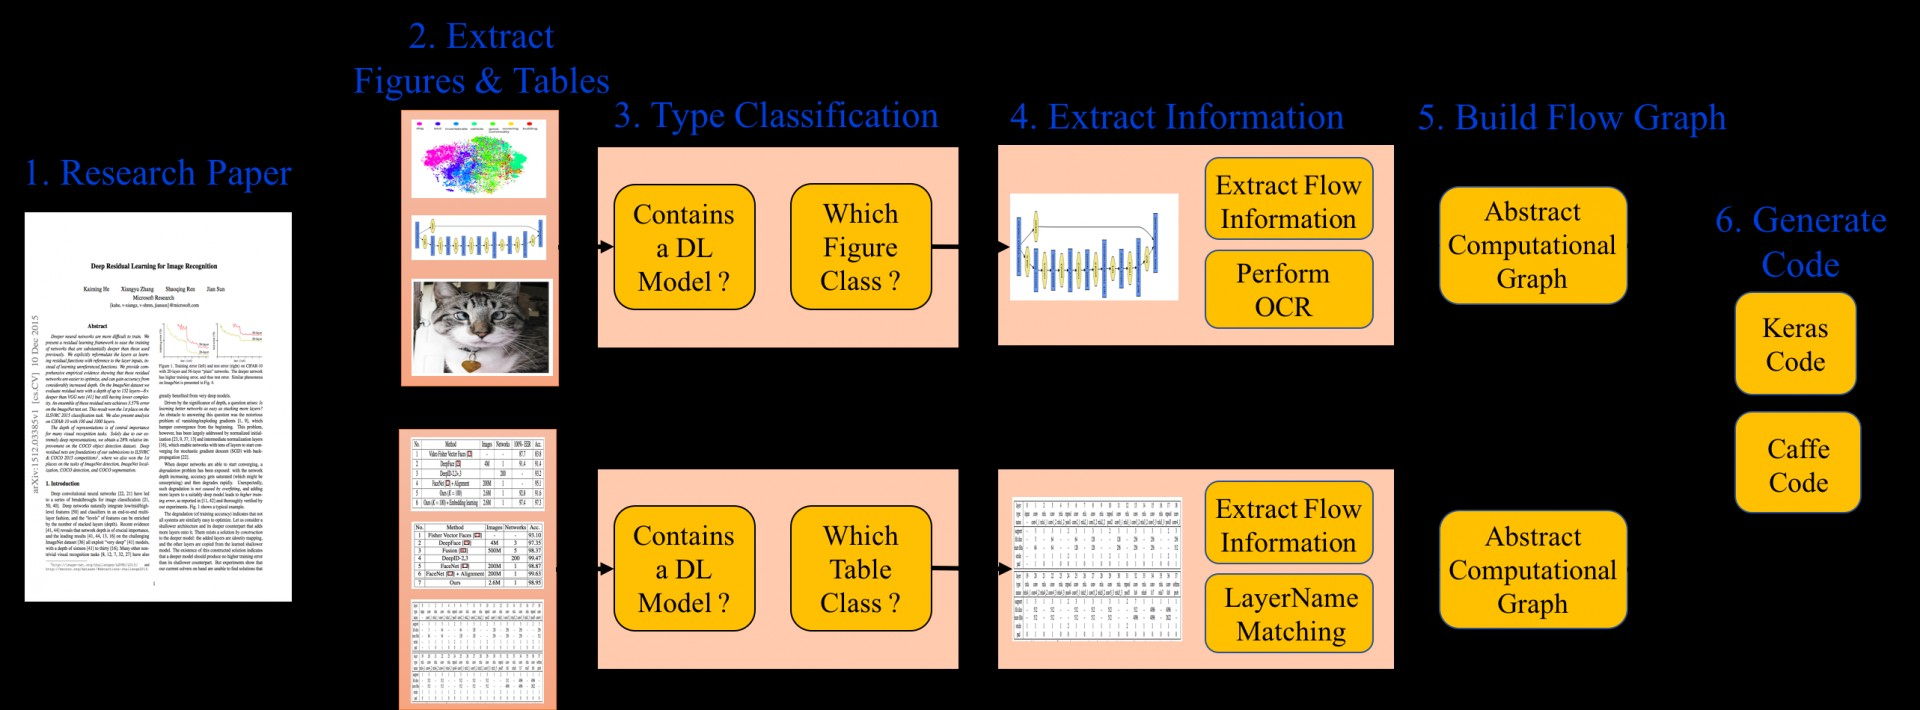 010 Research Paper Artificial Intelligence Topics Flow New Magnificent 2018 1920